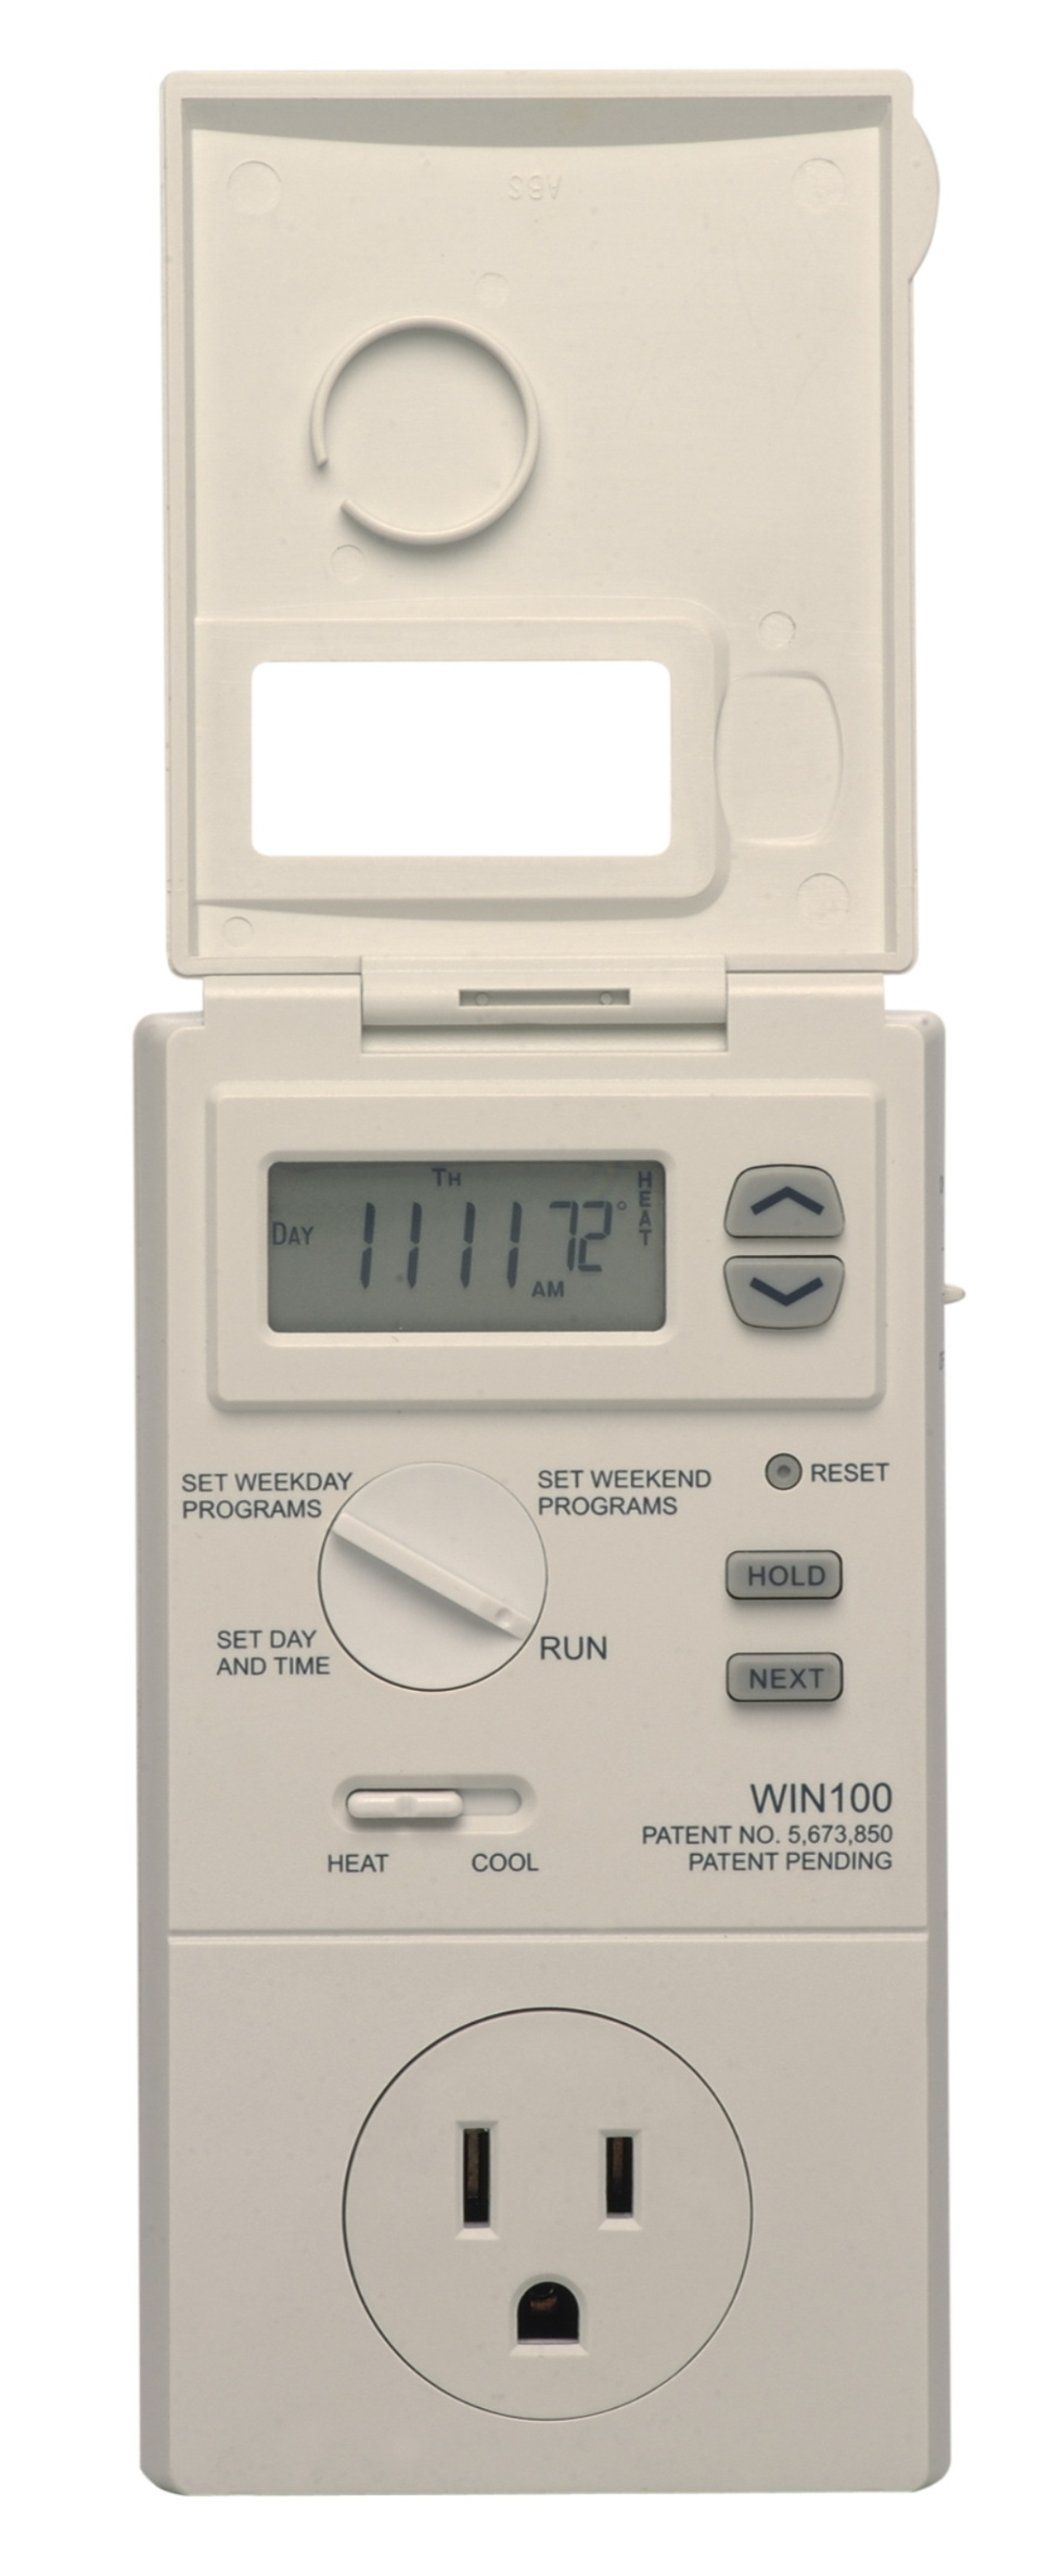 Lux WIN100 Heating & Cooling Programmable Outlet